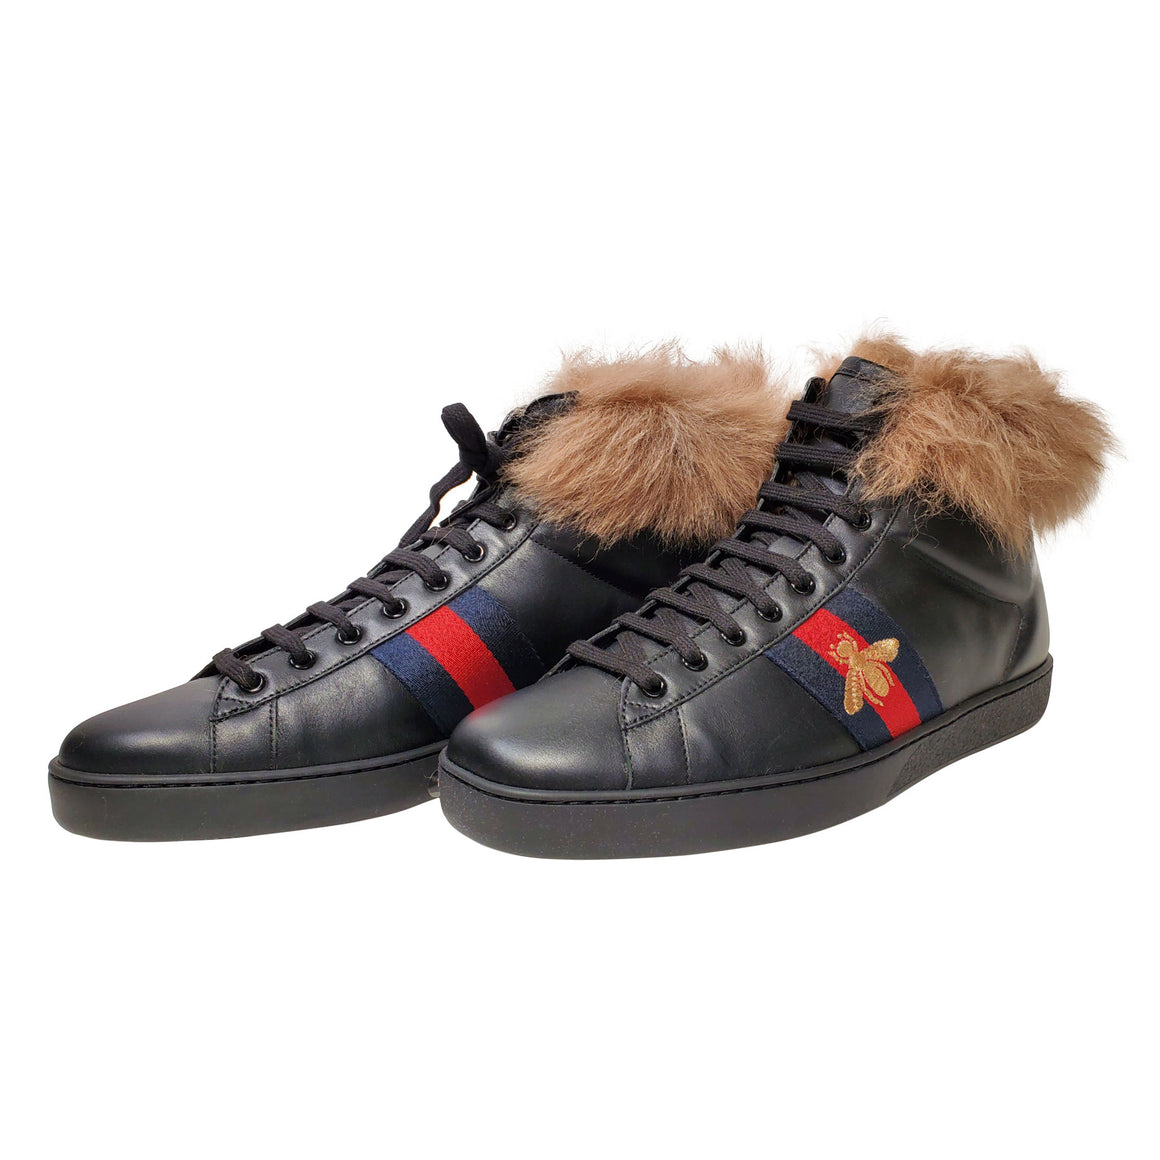 Black Gucci High Top Fur Lined Ace Sneakers